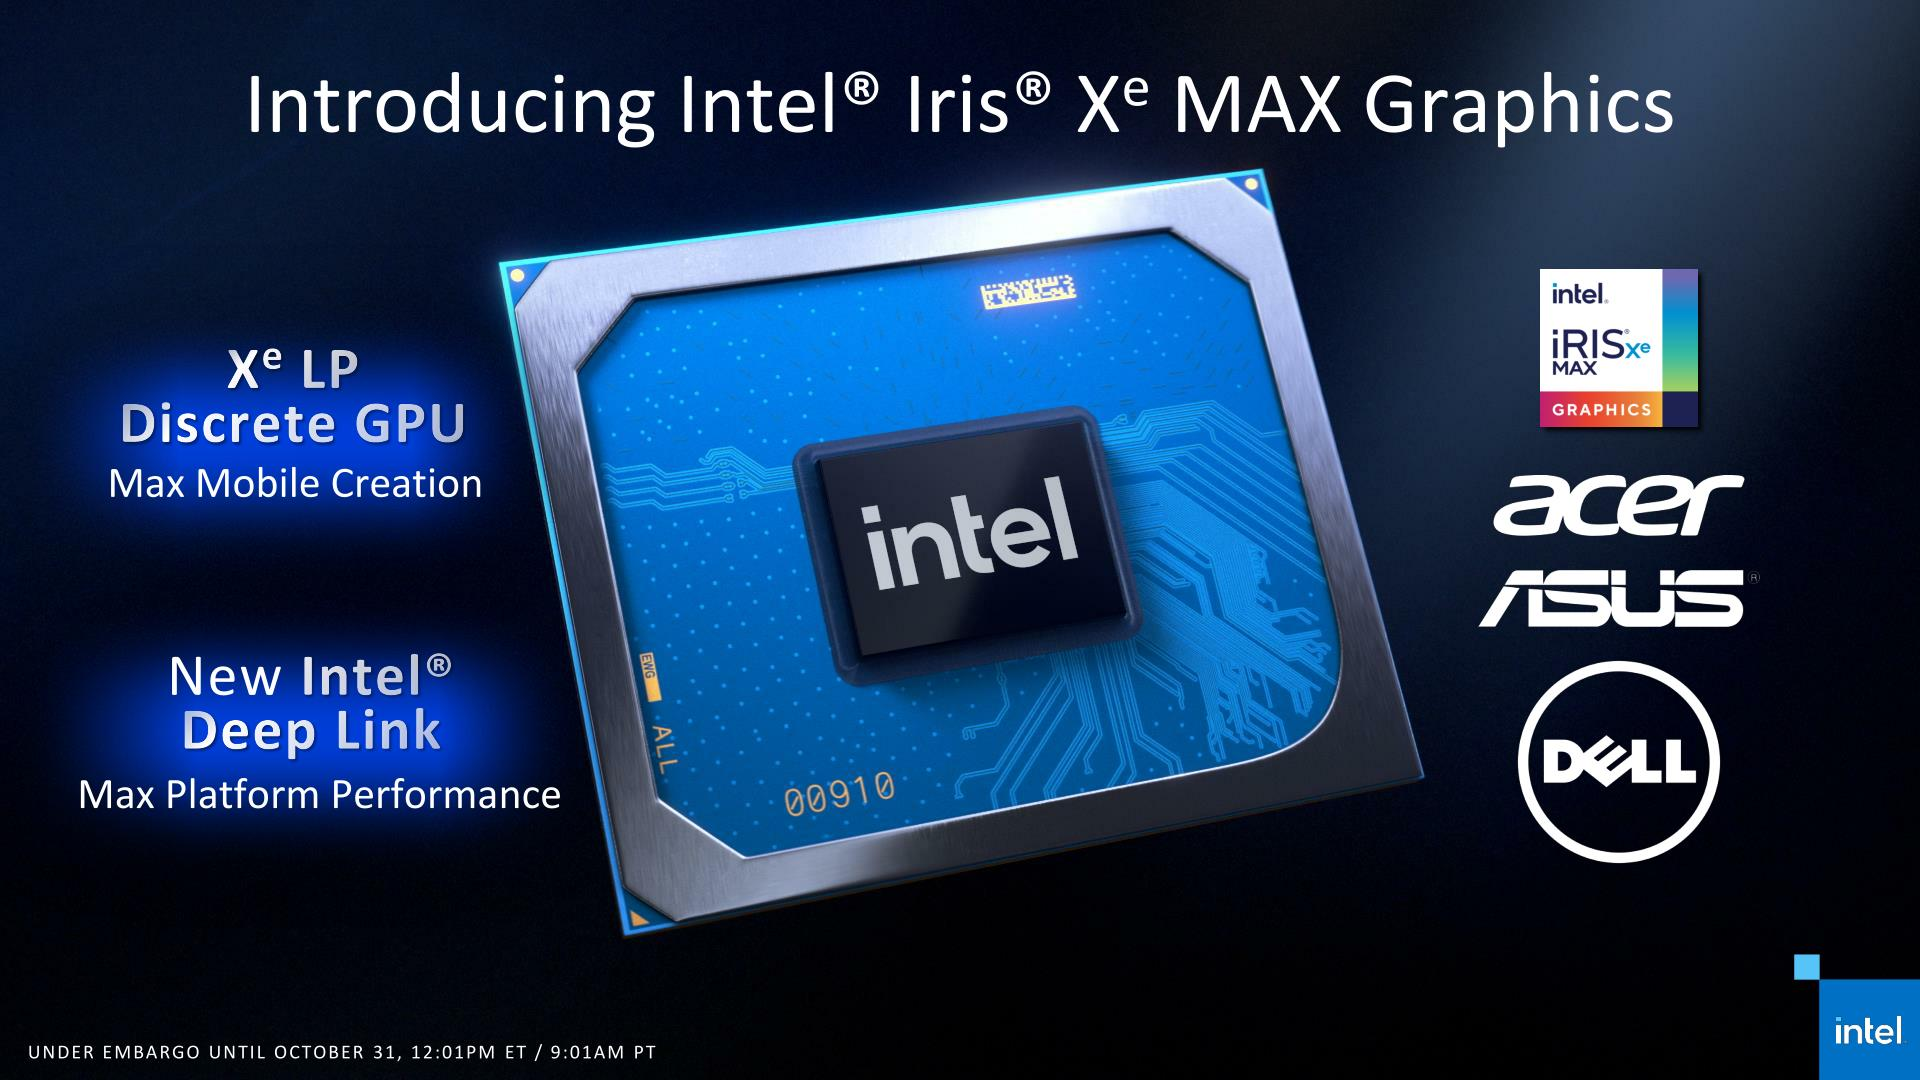 Intel Xe-HPG Graphics Card Specs Reportedly Leak Out: Up to 4,096 Cores, 16GB VRAM & 256-bit Bus